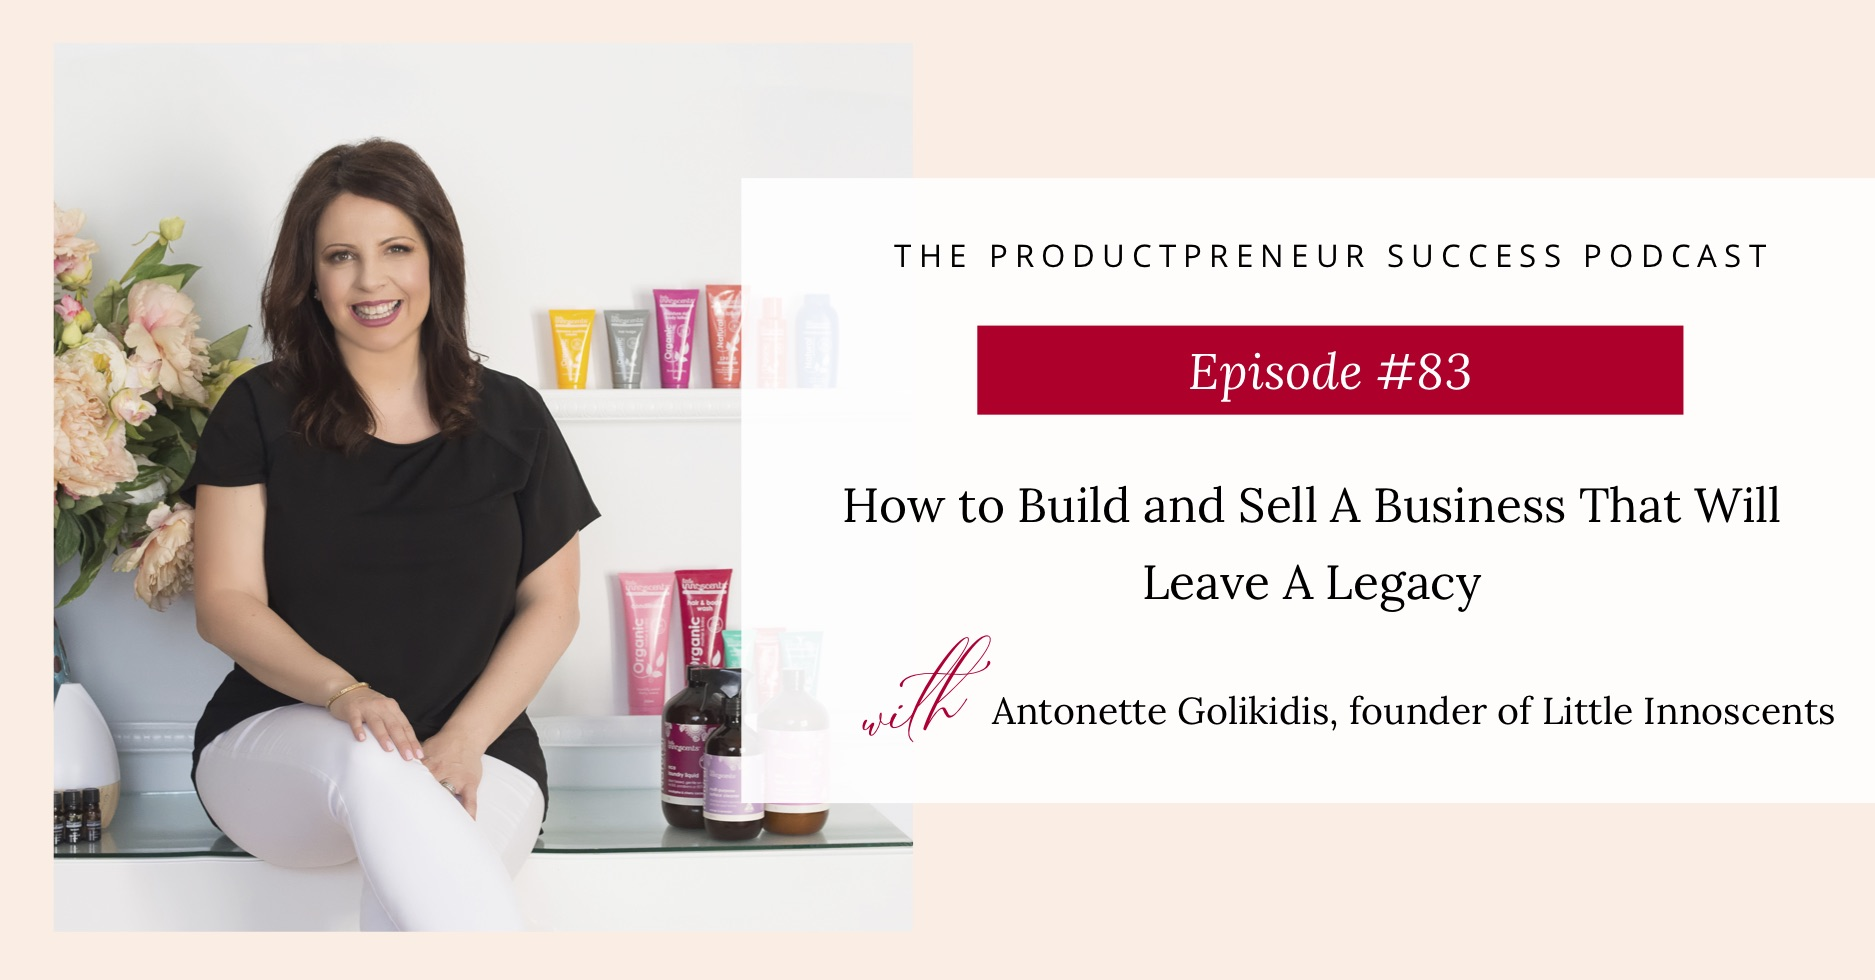 Podcast Graphic on how to build and sell a product business